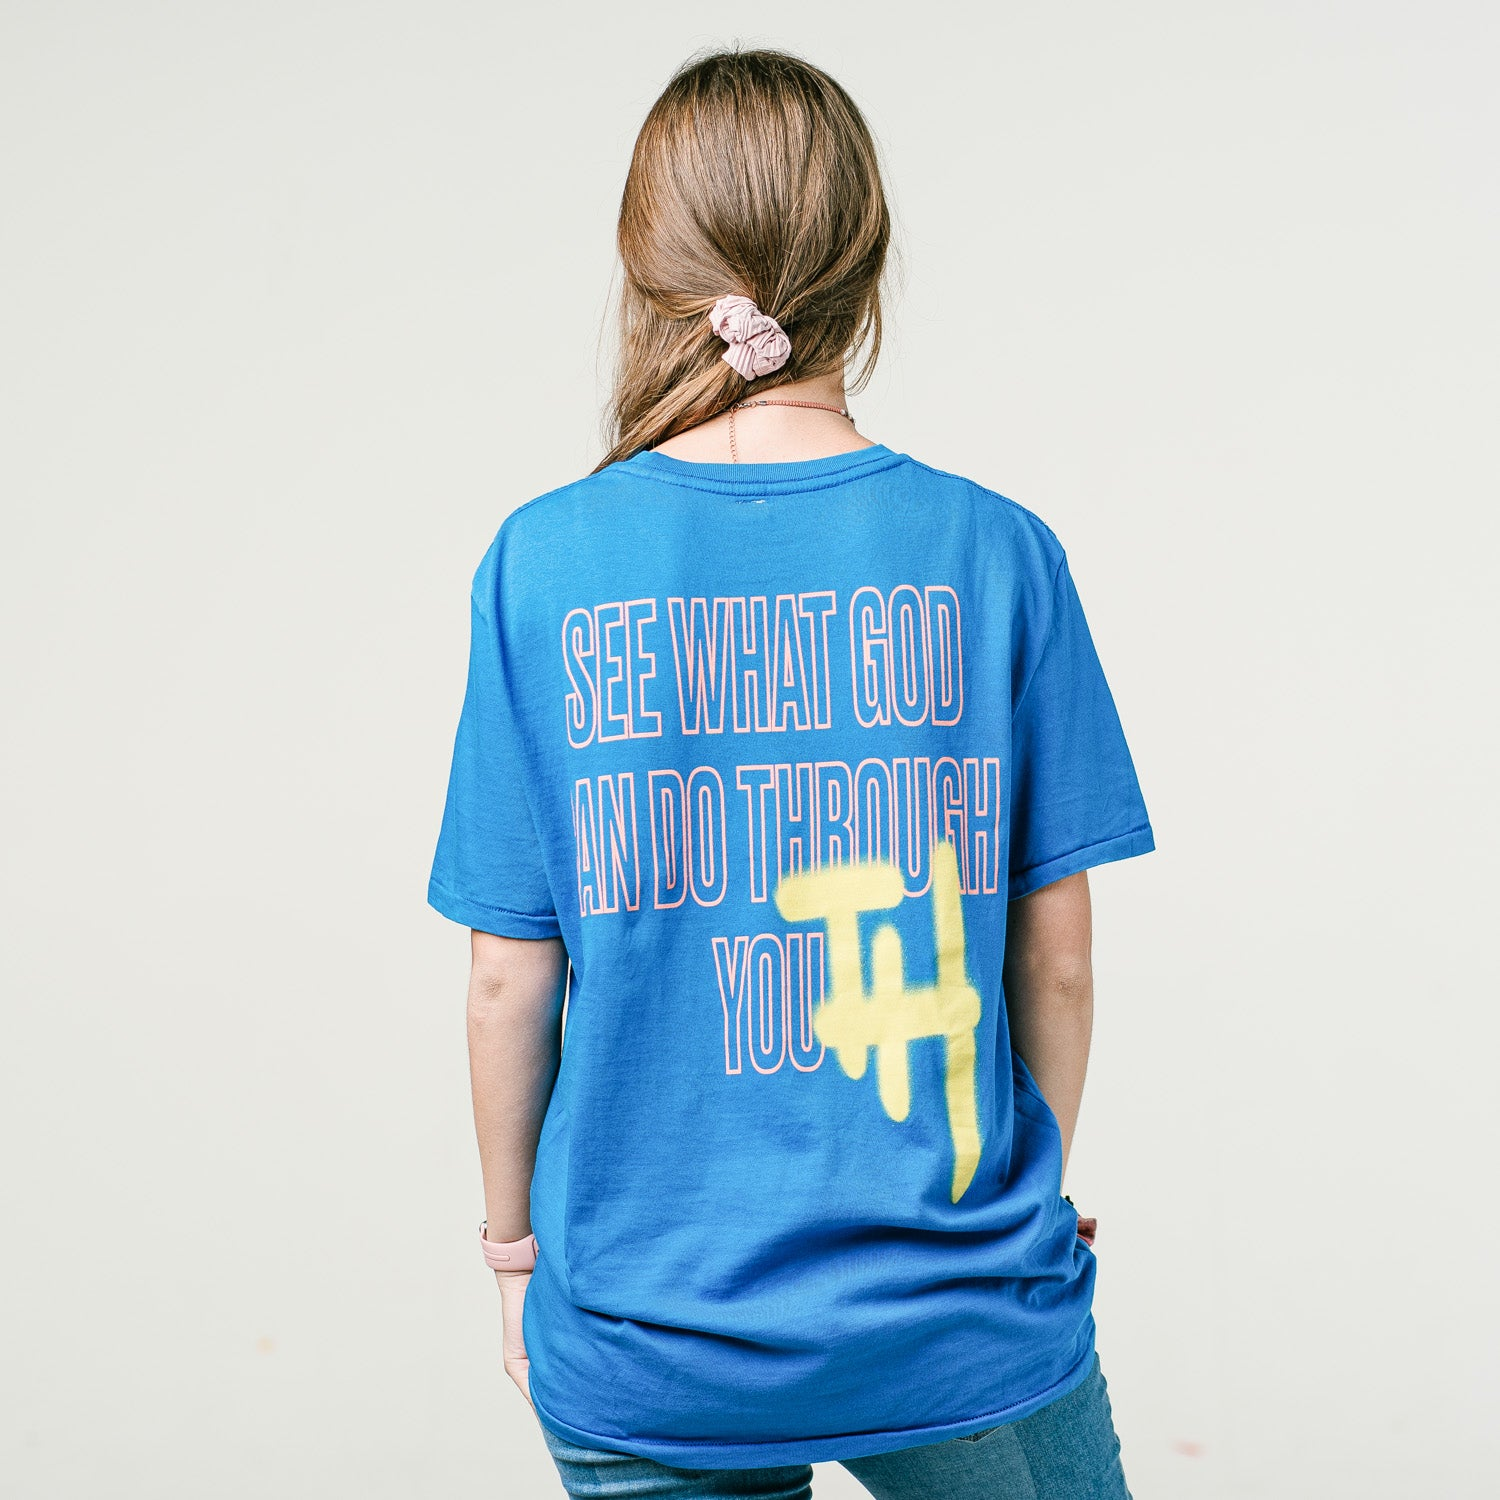 'See What God Can Do Through Youth' tee